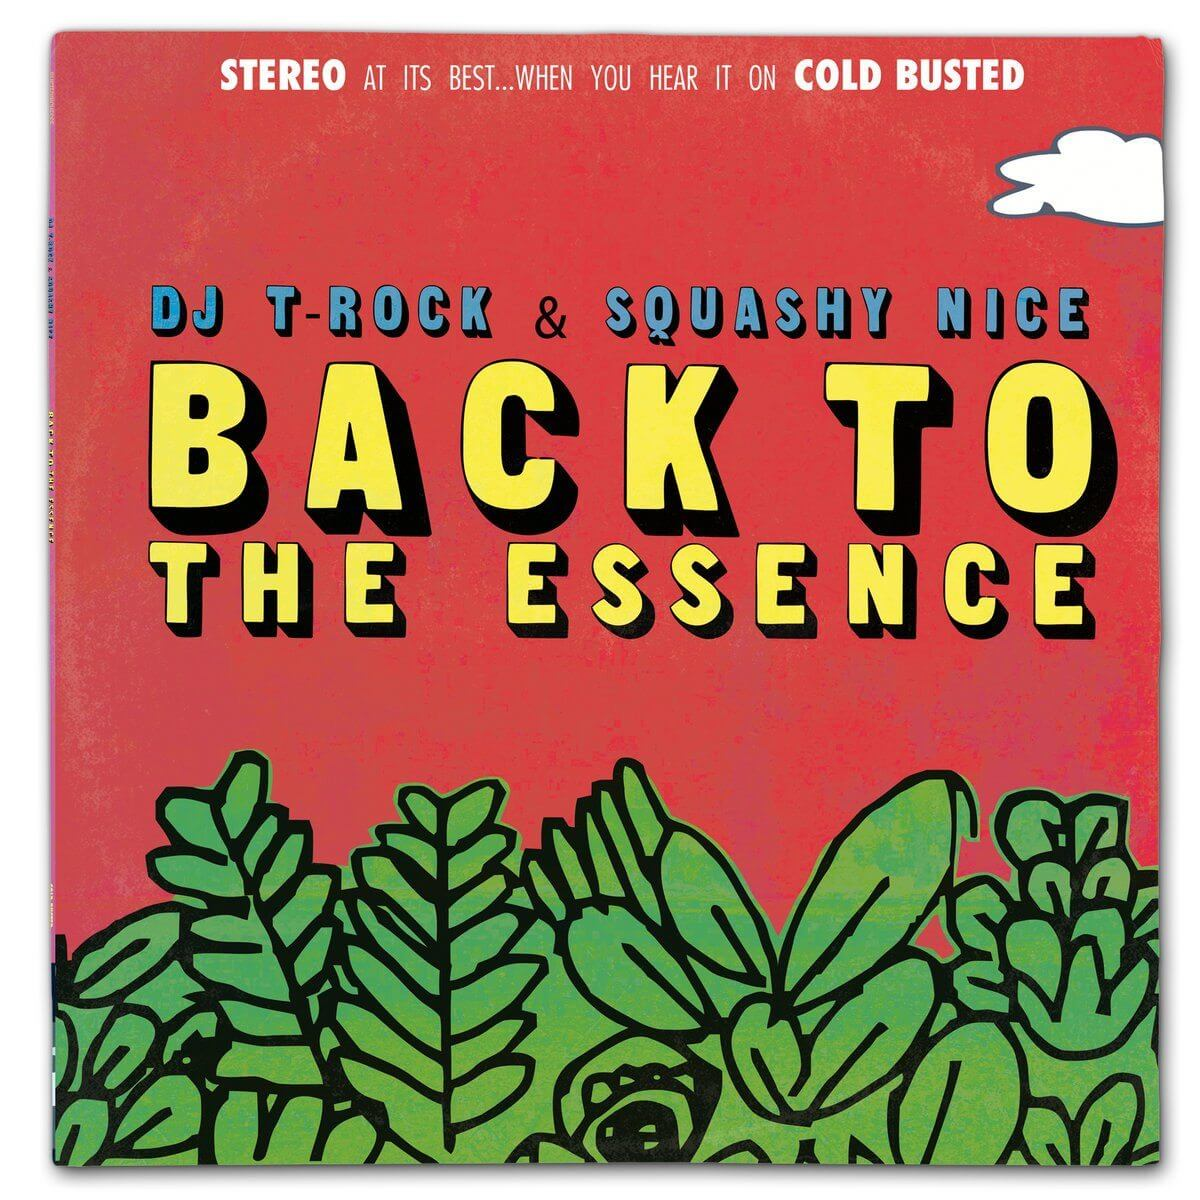 "DJ T-Rock & Squashy Nice - Back To The Essence - Limited Edition 12"" Vinyl Cold Busted"